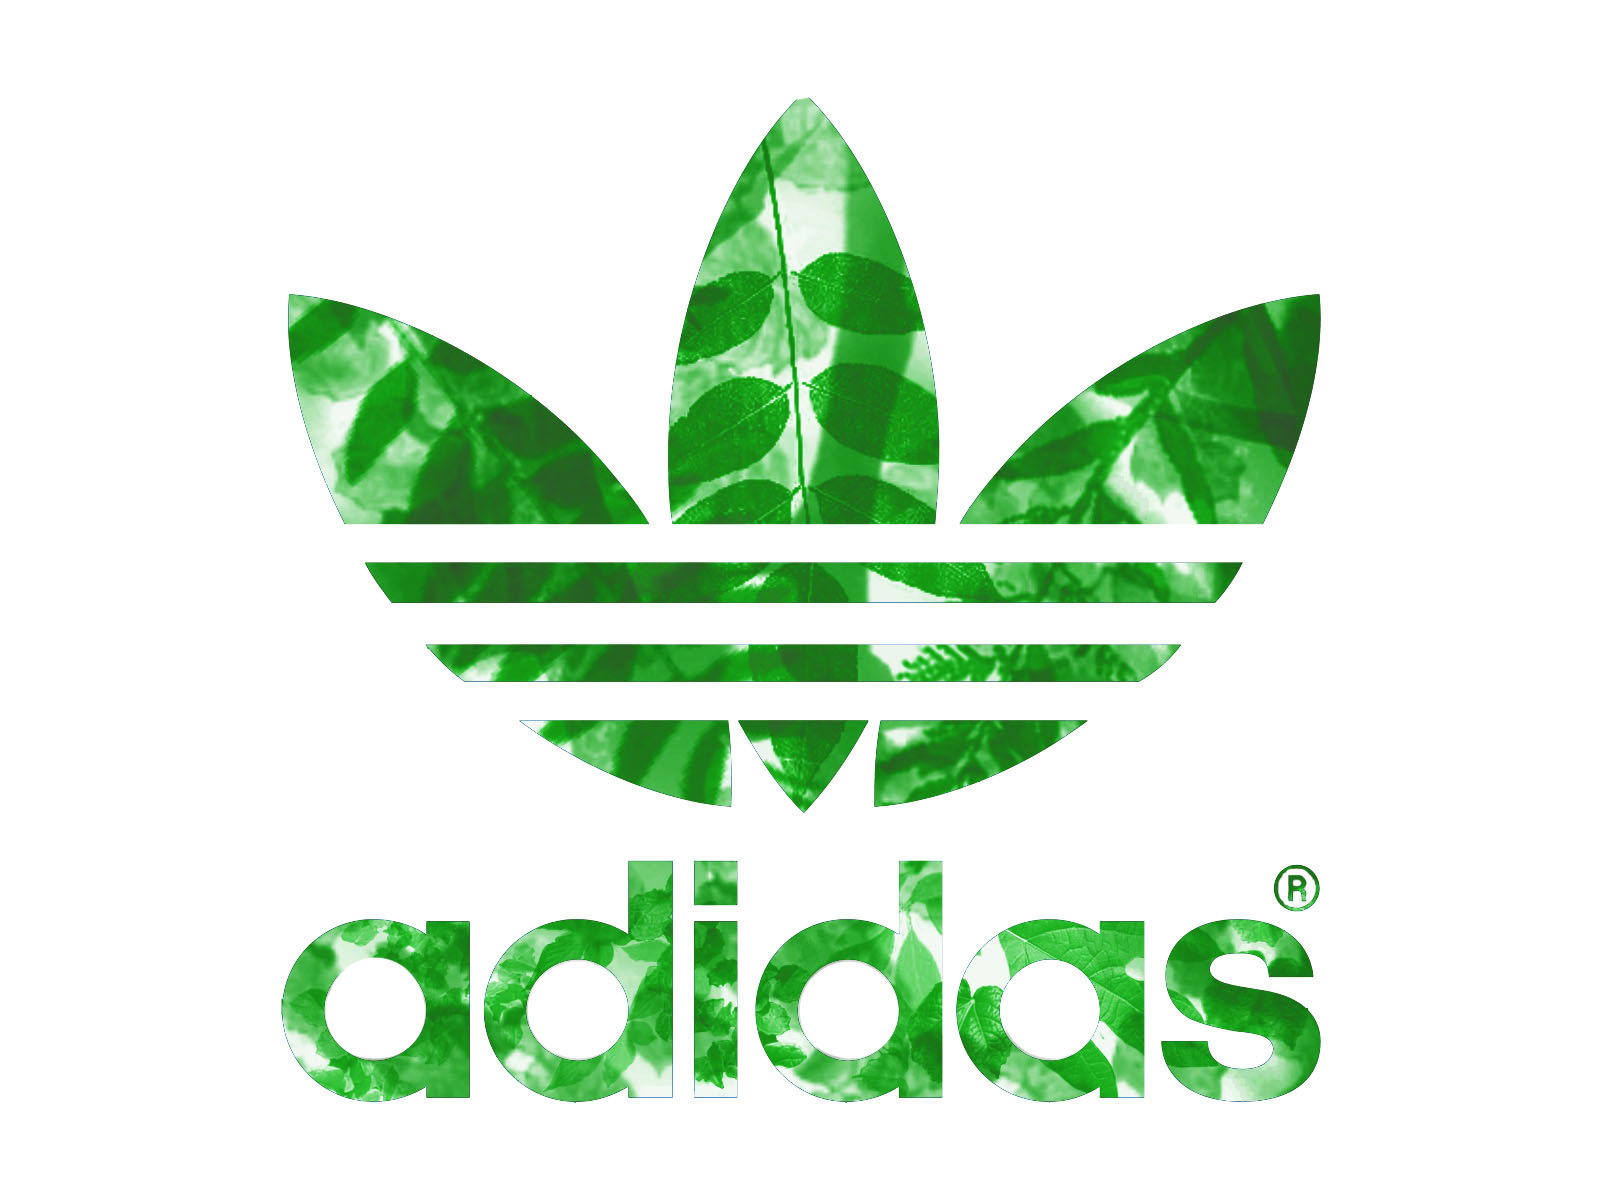 Adidas Group is comprised of three core companies: adidas, a manufacturer of footwear, apparel, and accessories; Reebok, a manufacturer of footwear, apparel, and accessories; and TaylorMade-adidas, a producer of Golf Equipment such as metalwoods, irons putters, golf .